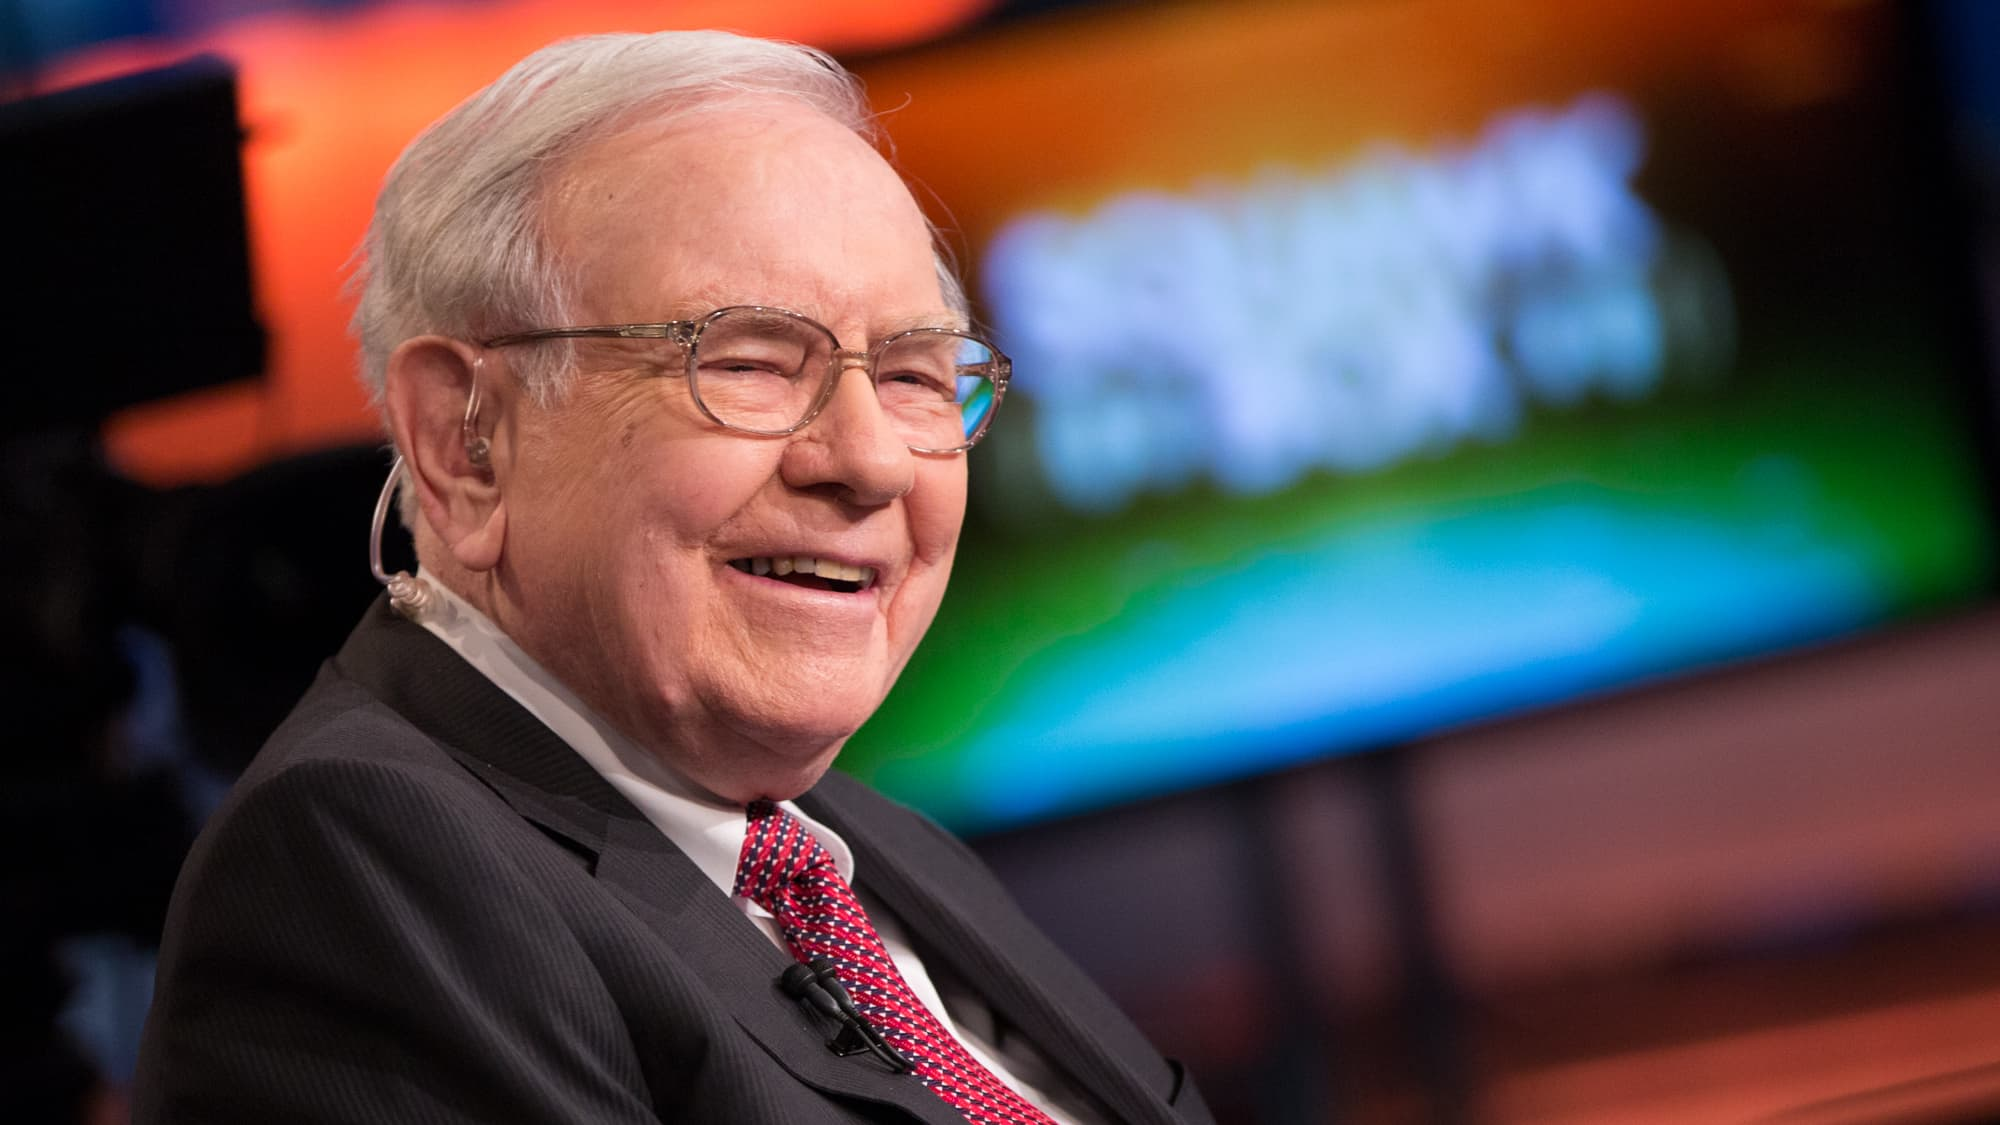 In 2008 legendary investor Warren Buffett bet the hedge funds industry they could not put together a portfolio of hedge funds that would outperform an S&P 500 Index fund over a 10-year period.